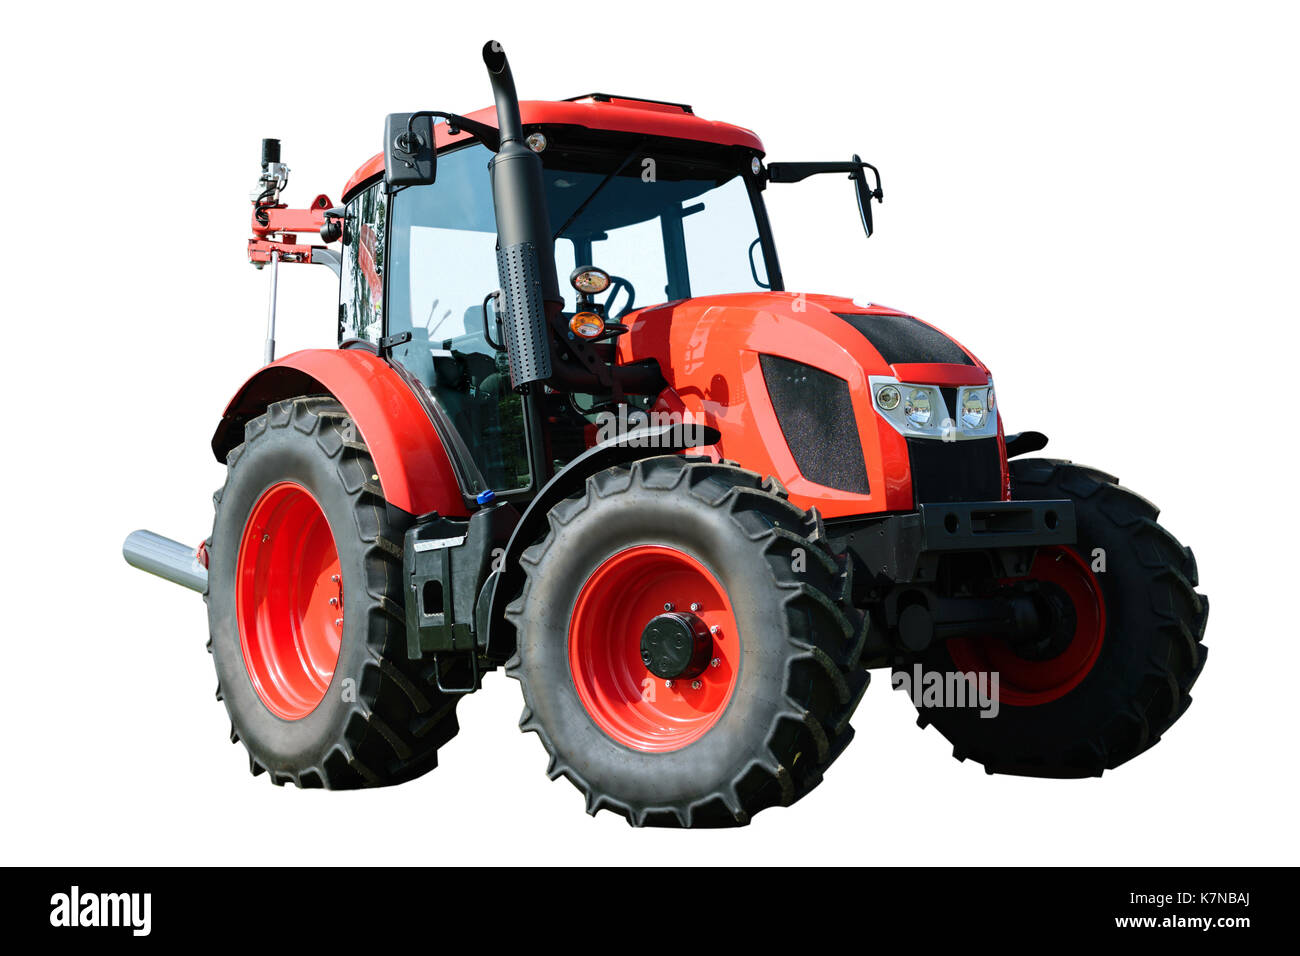 New and modern red agricultural generic tractor isolated on white background. May depict third Party IP. - Stock Image